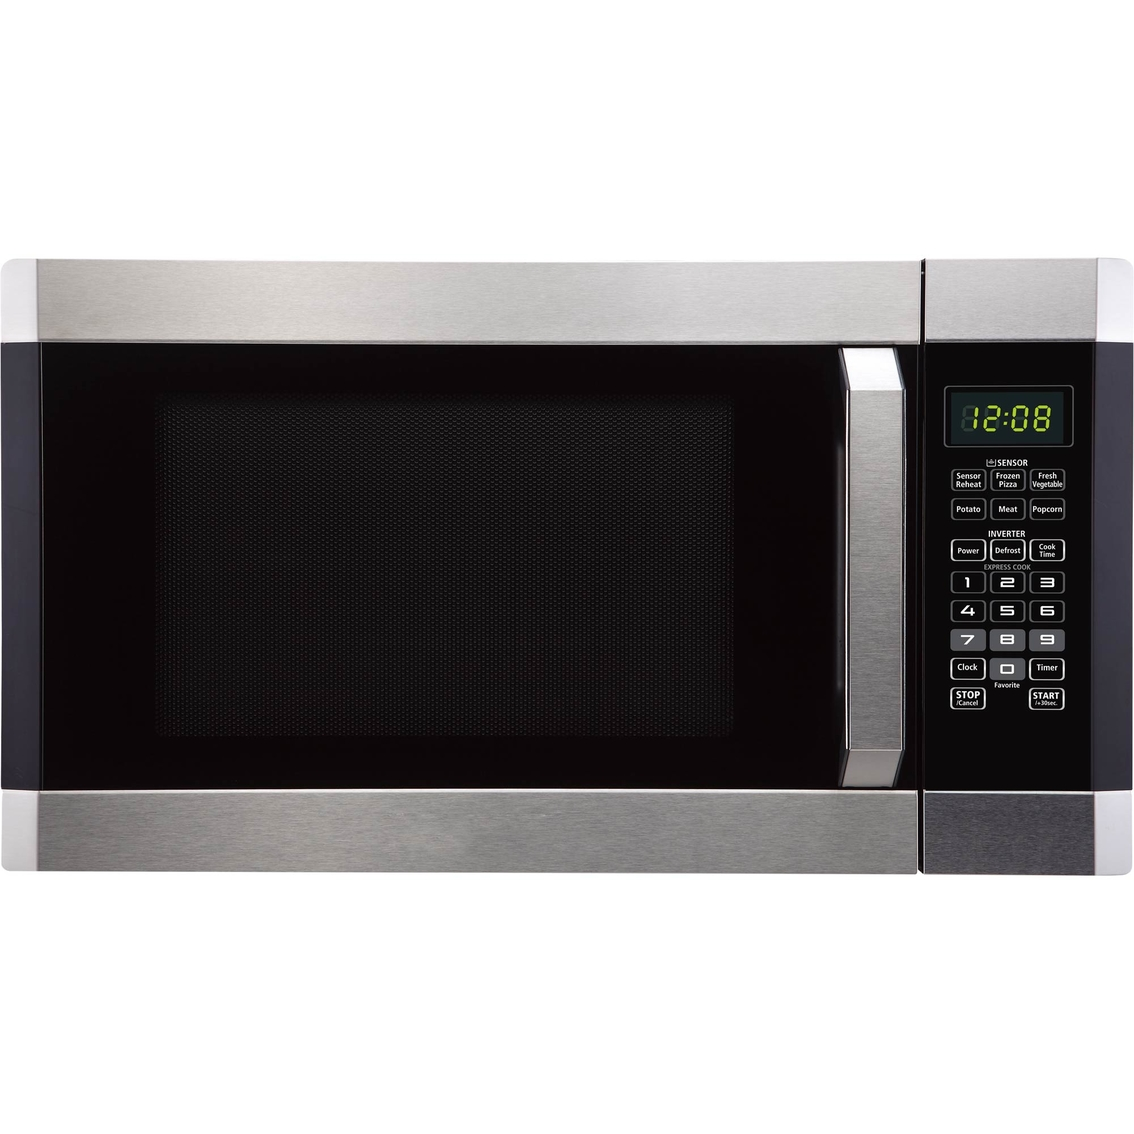 simply perfect 1 6cf microwave oven w inverter function stainless steel